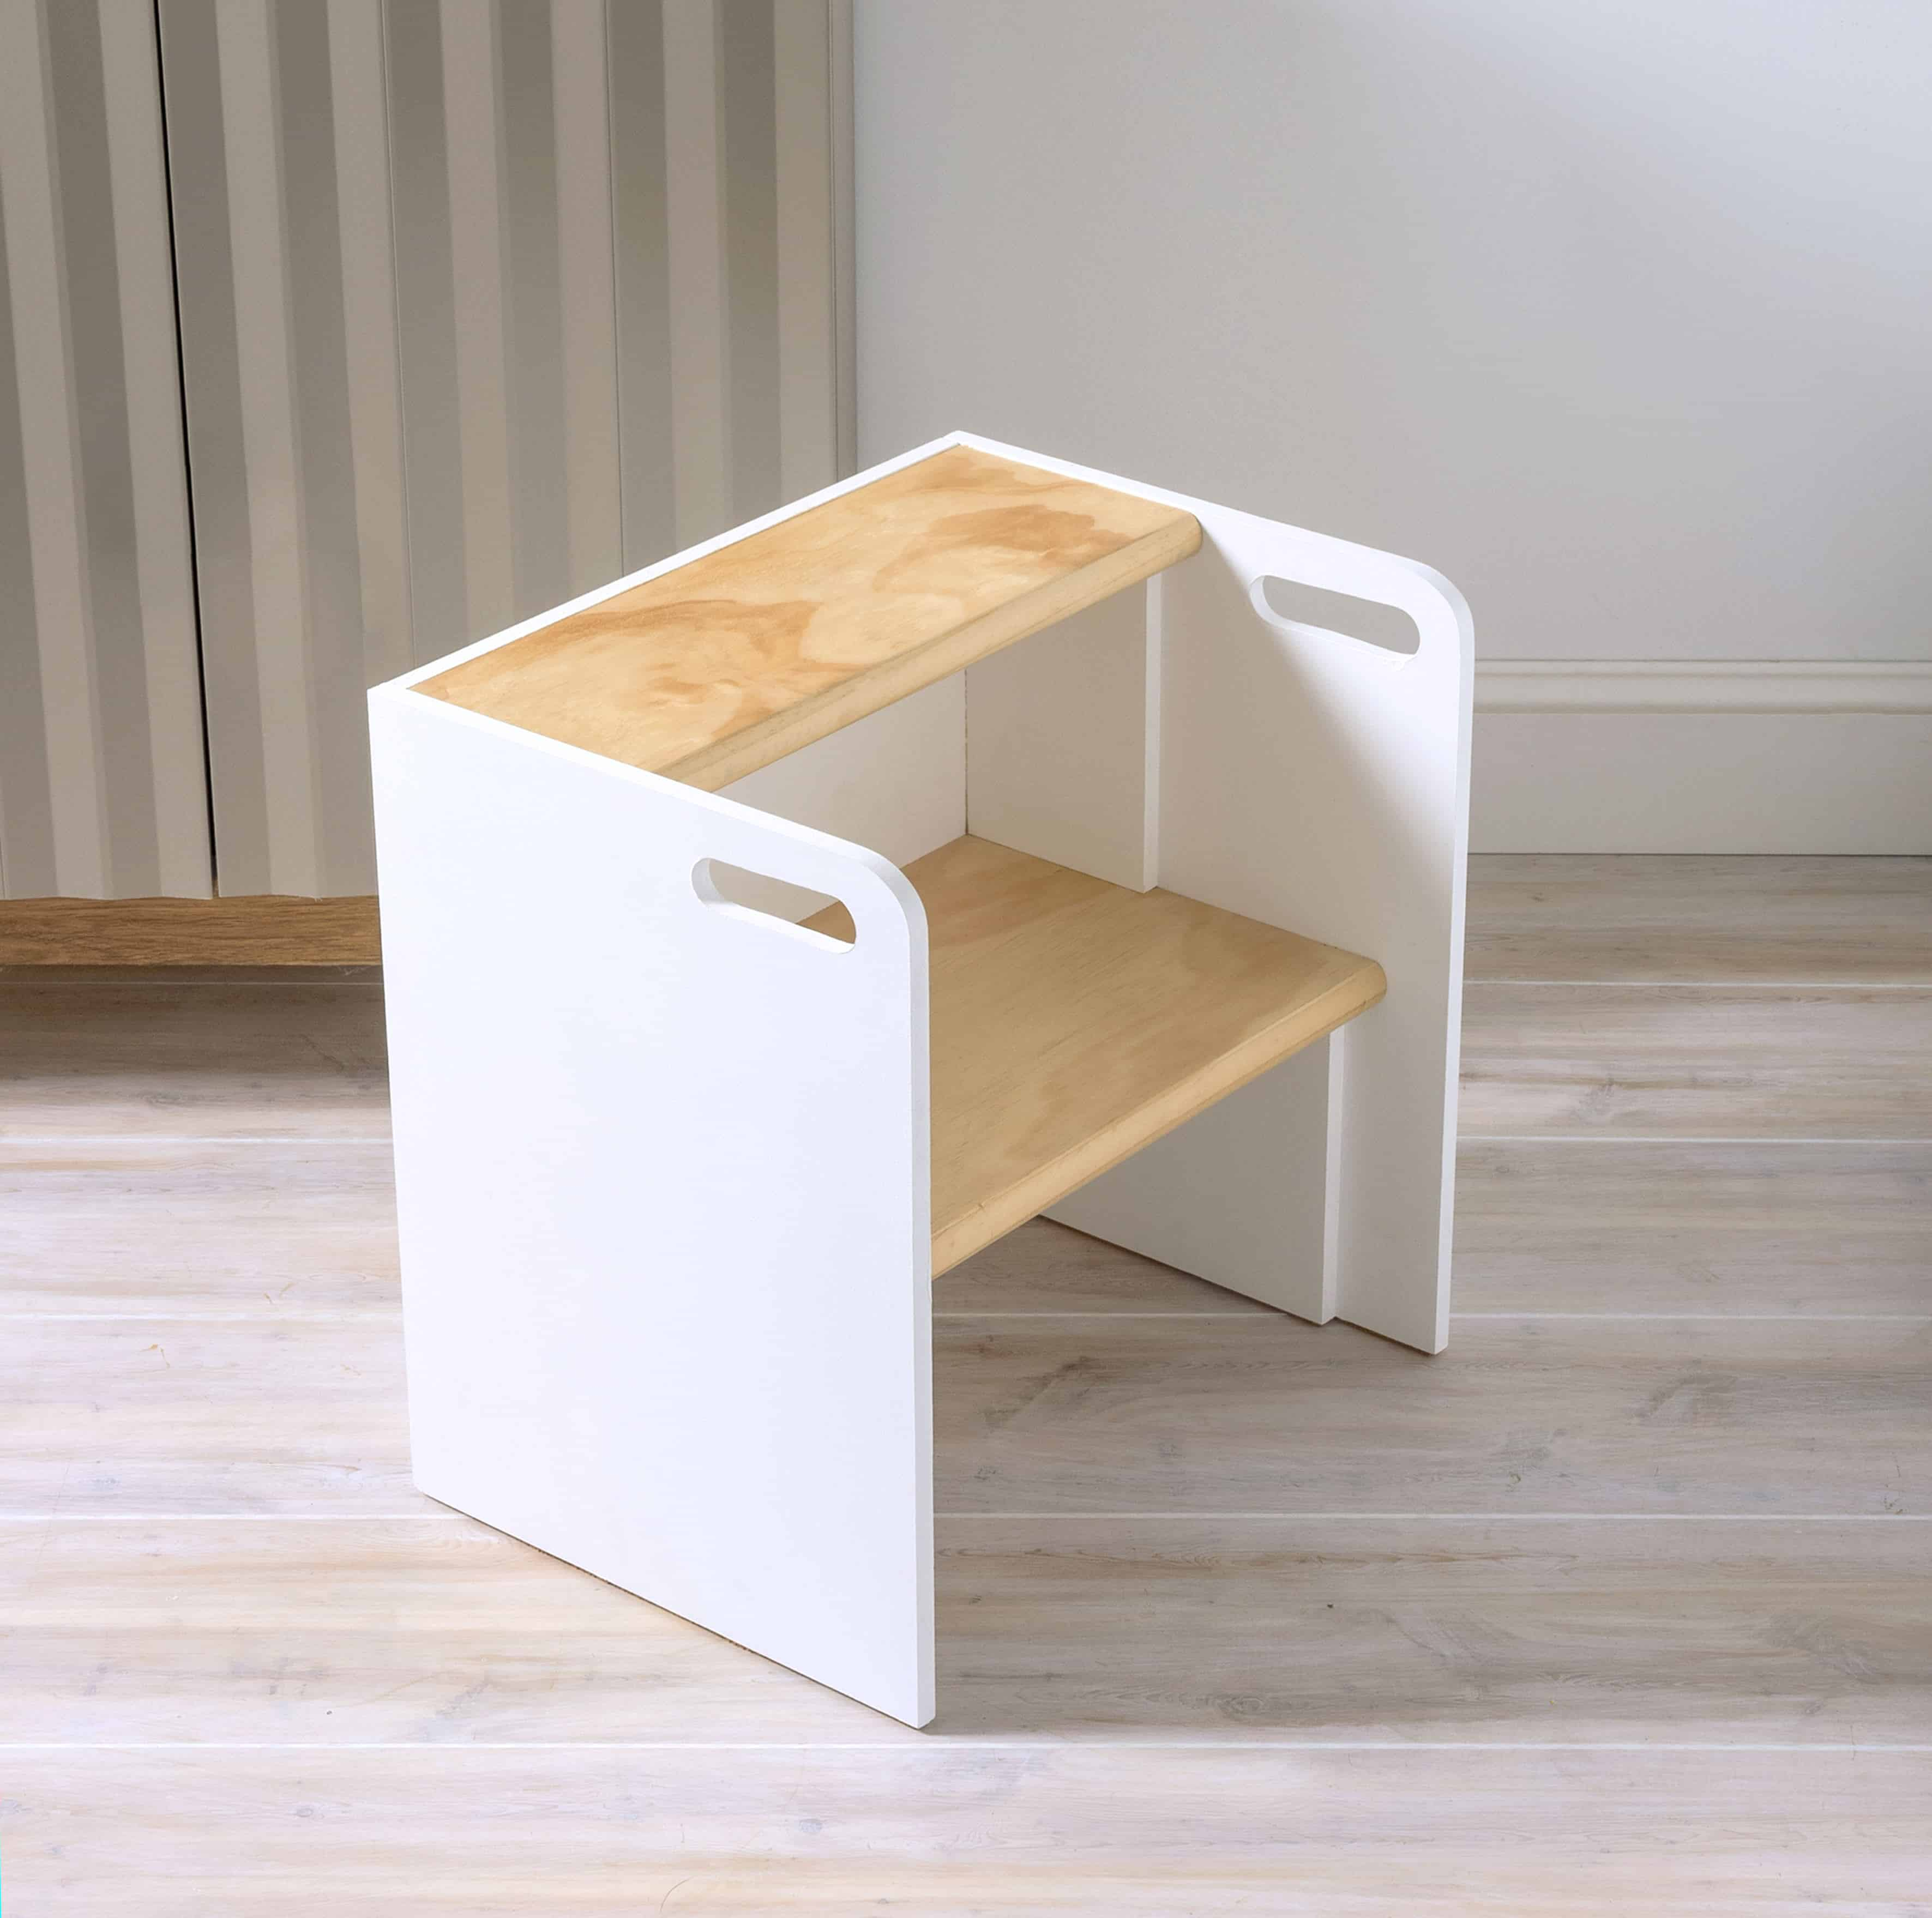 Multipurpose Learn How To Build A Wooden Step Stool That Turns Into A Chair If You Flip Diy Wooden Step Stool Chair Diy Candy Wood Step Stool Target Wood Step Stool Round baby Wood Step Stool